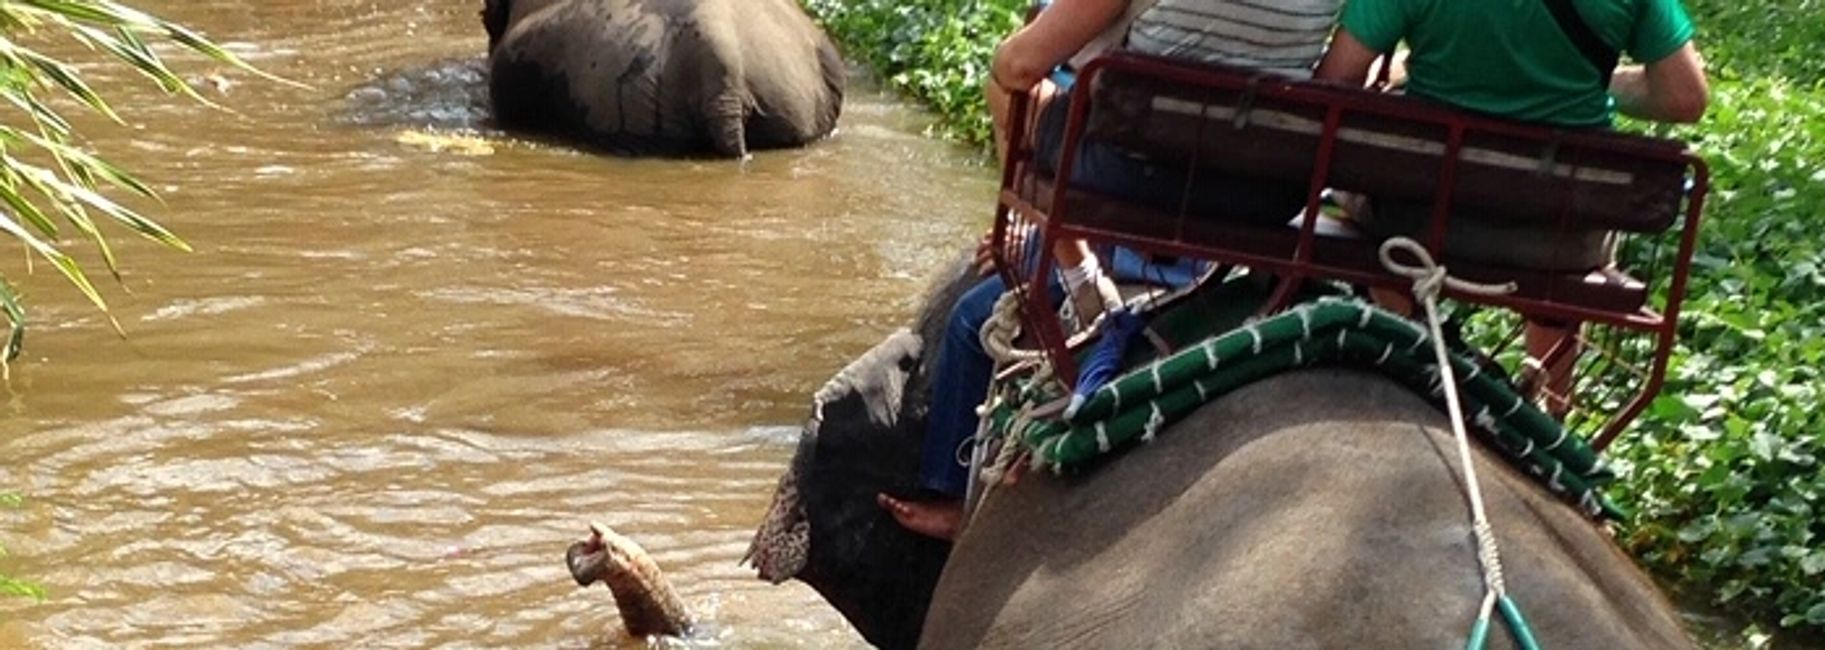 Riding on elephants in stream.